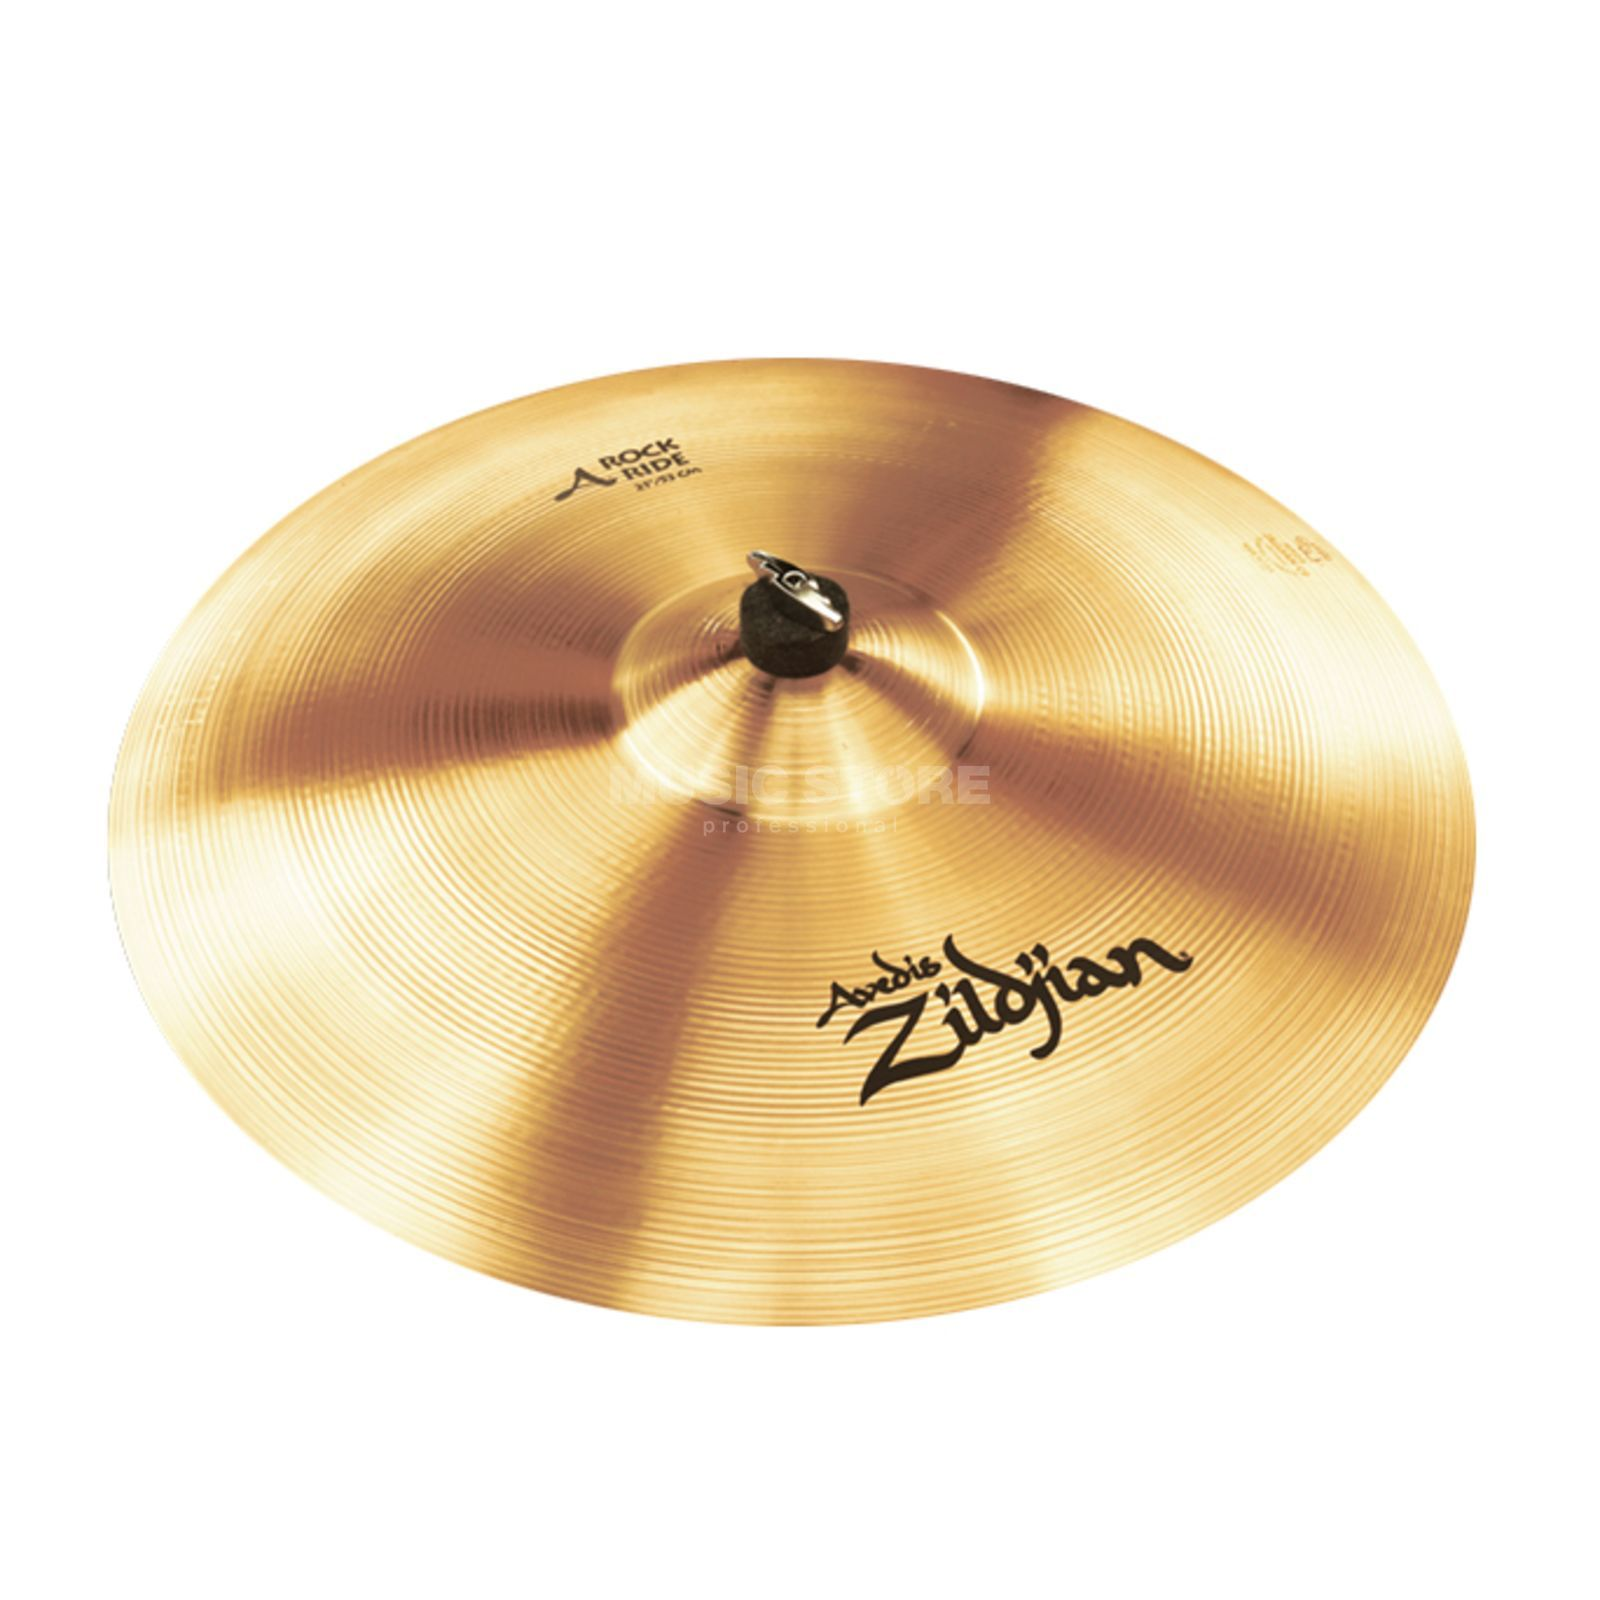 "Zildjian A' Zildjian Rock Ride 21"", Traditional Finish Produktbild"